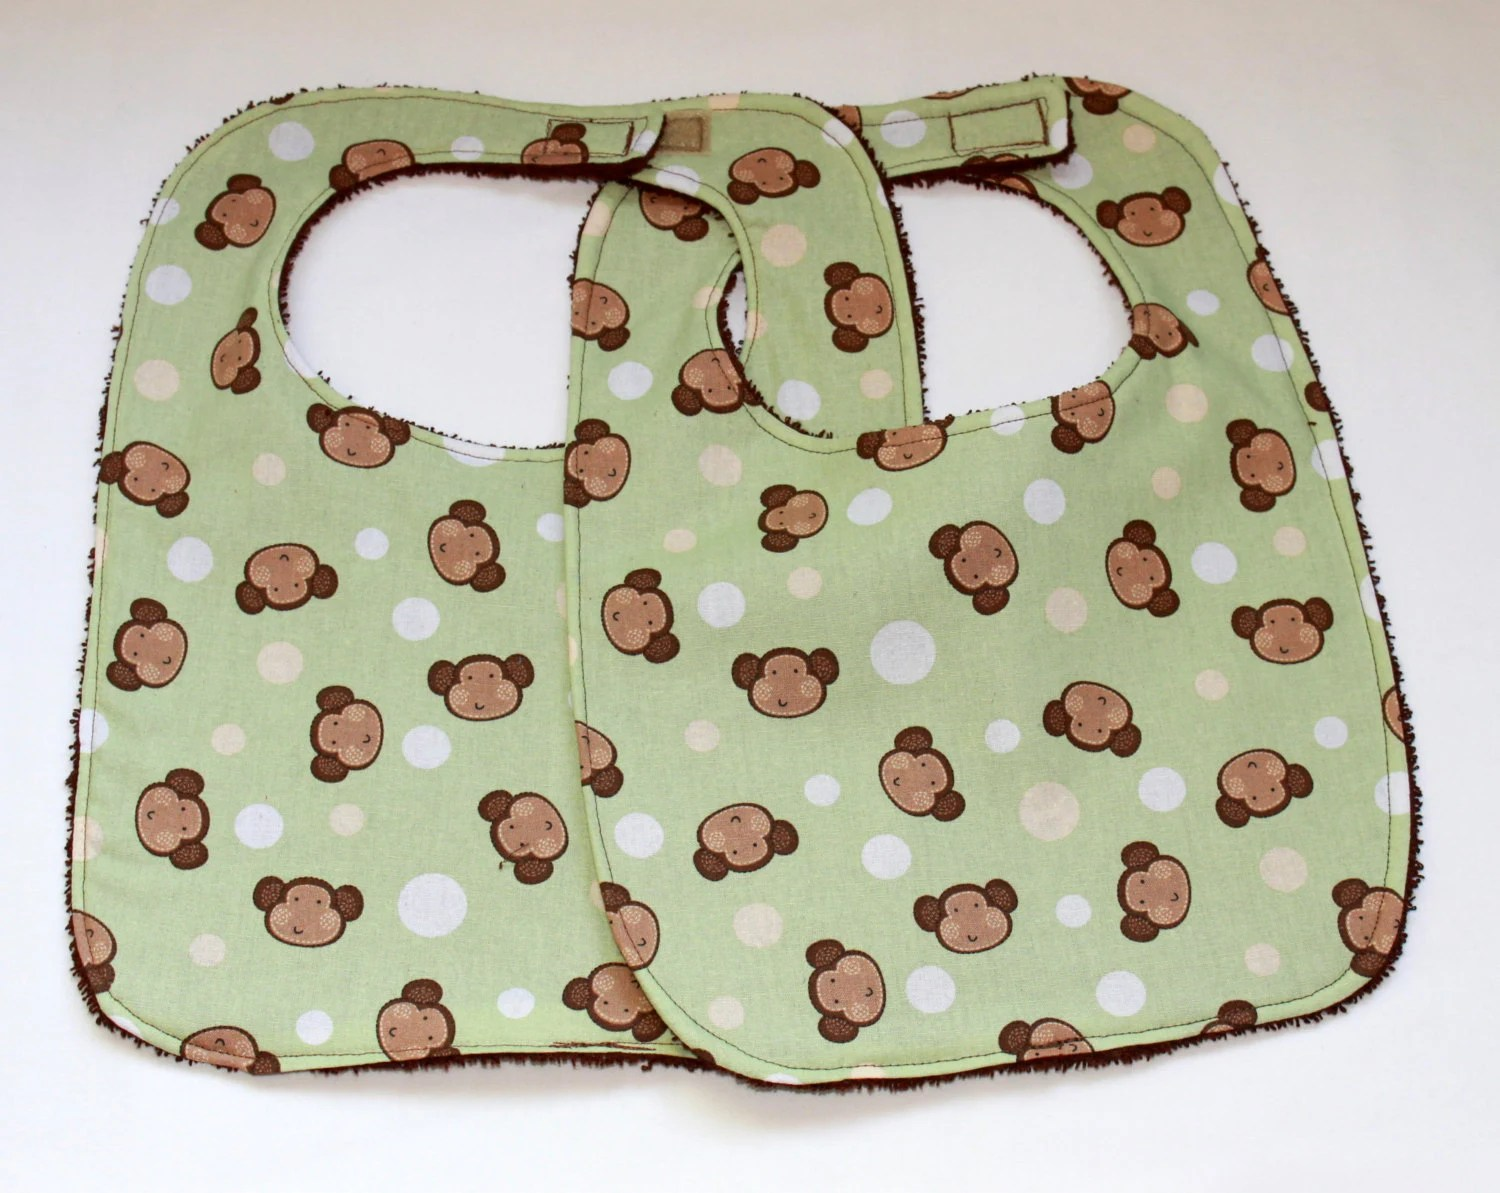 Baby/Toddler Bib Set of Two - Monkey Bib - Cotton and Terry Cloth  - Gender Neutral - Oceanlvrcrafts